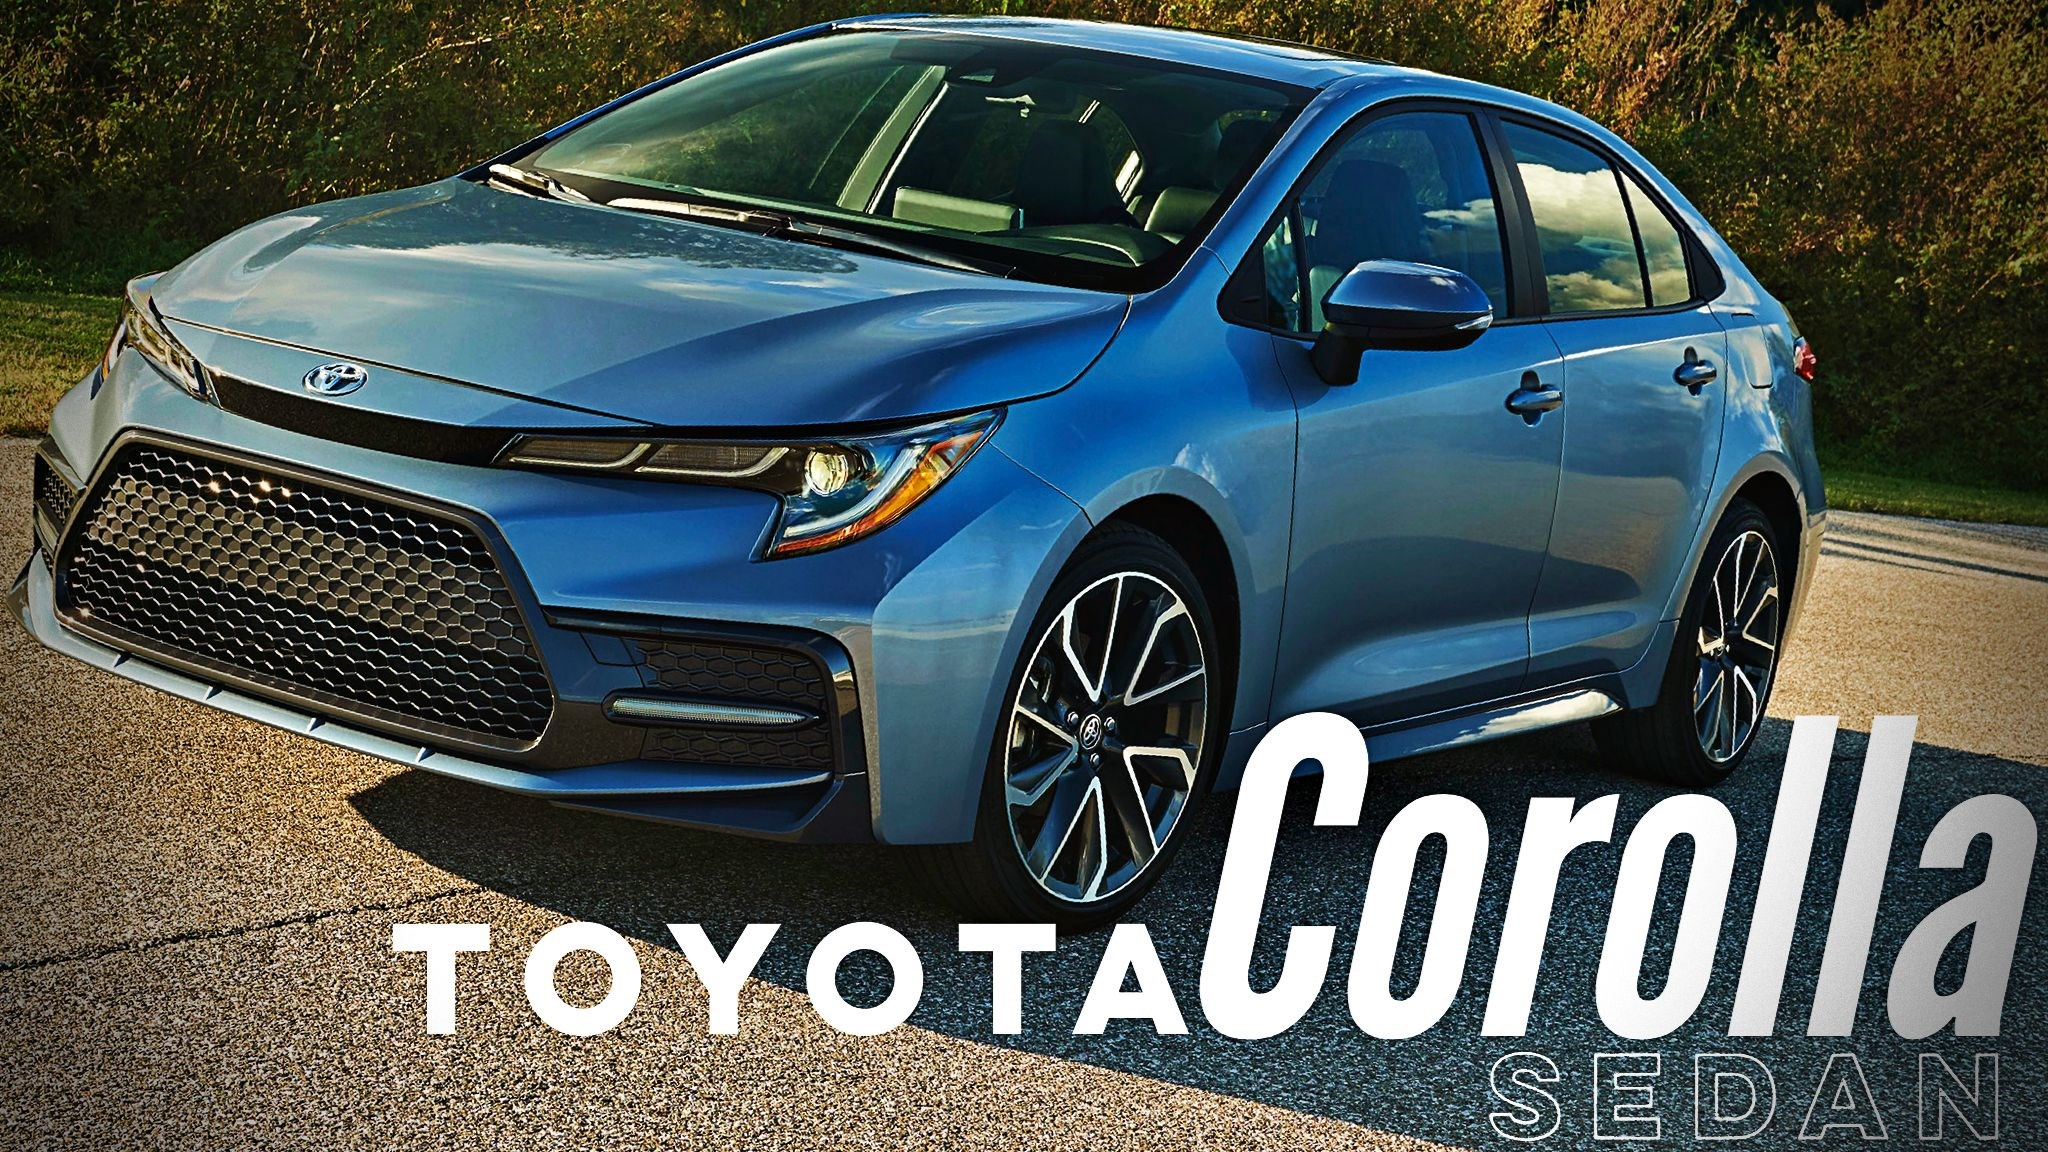 2020 Toyota Corolla Sedan Revealed – Here Q4 2019